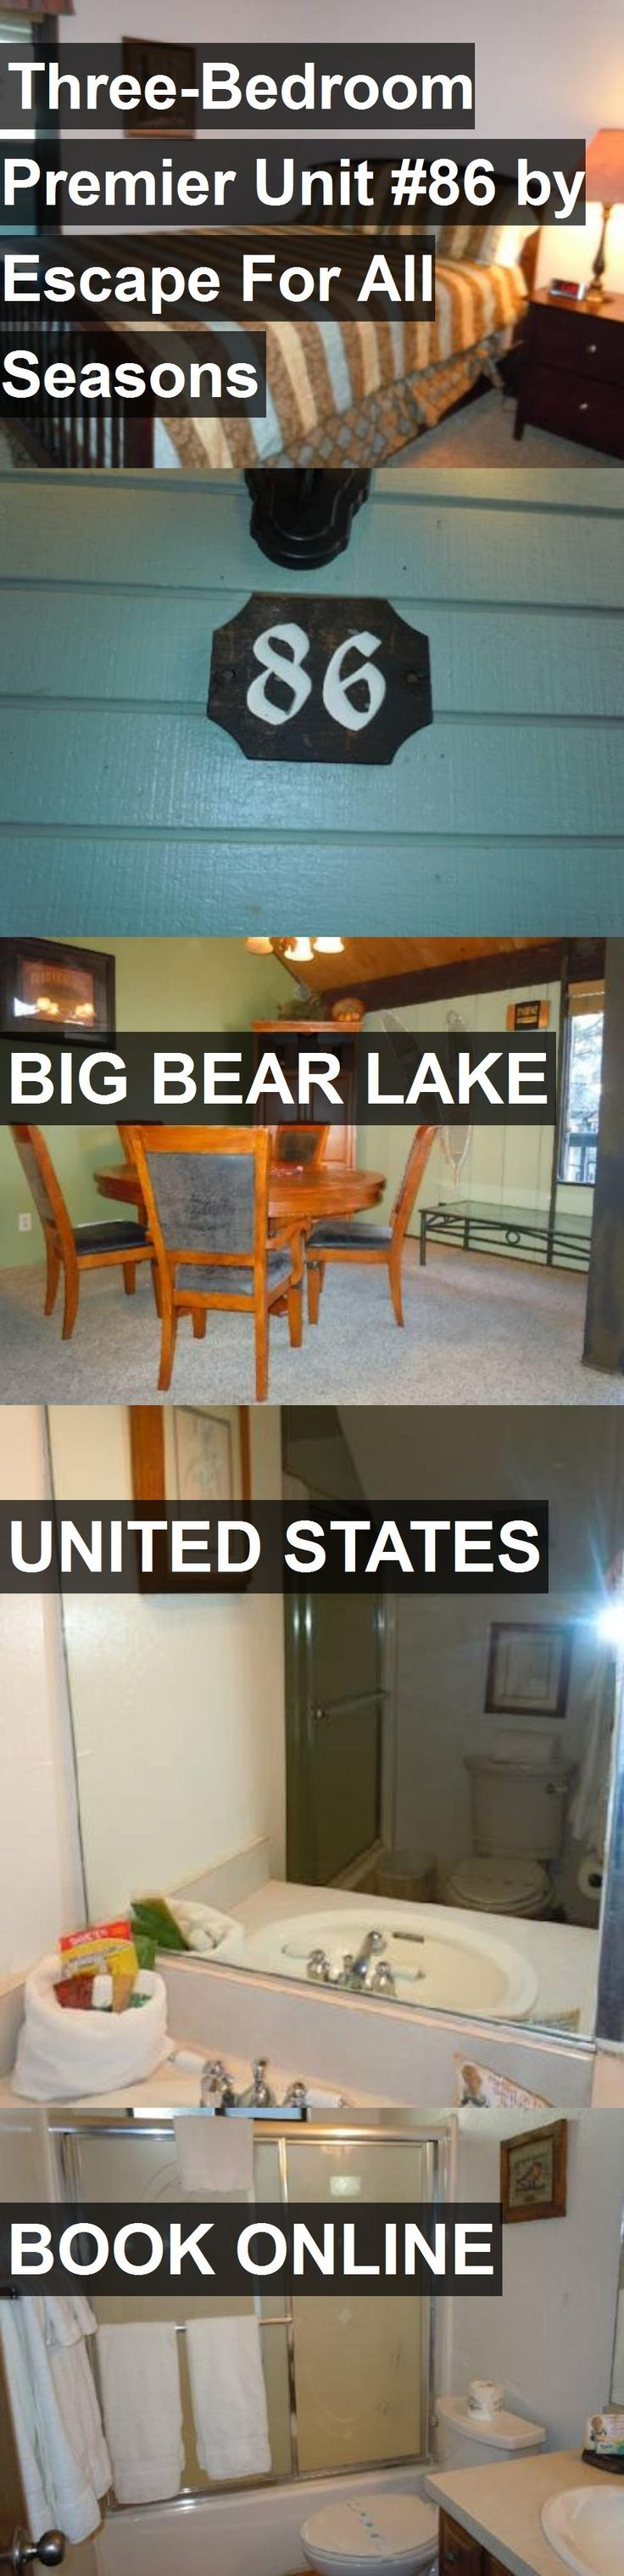 Hotel Three-Bedroom Premier Unit #86 by Escape For All Seasons in Big Bear Lake, United States. For more information, photos, reviews and best prices please follow the link. #UnitedStates #BigBearLake #travel #vacation #hotel